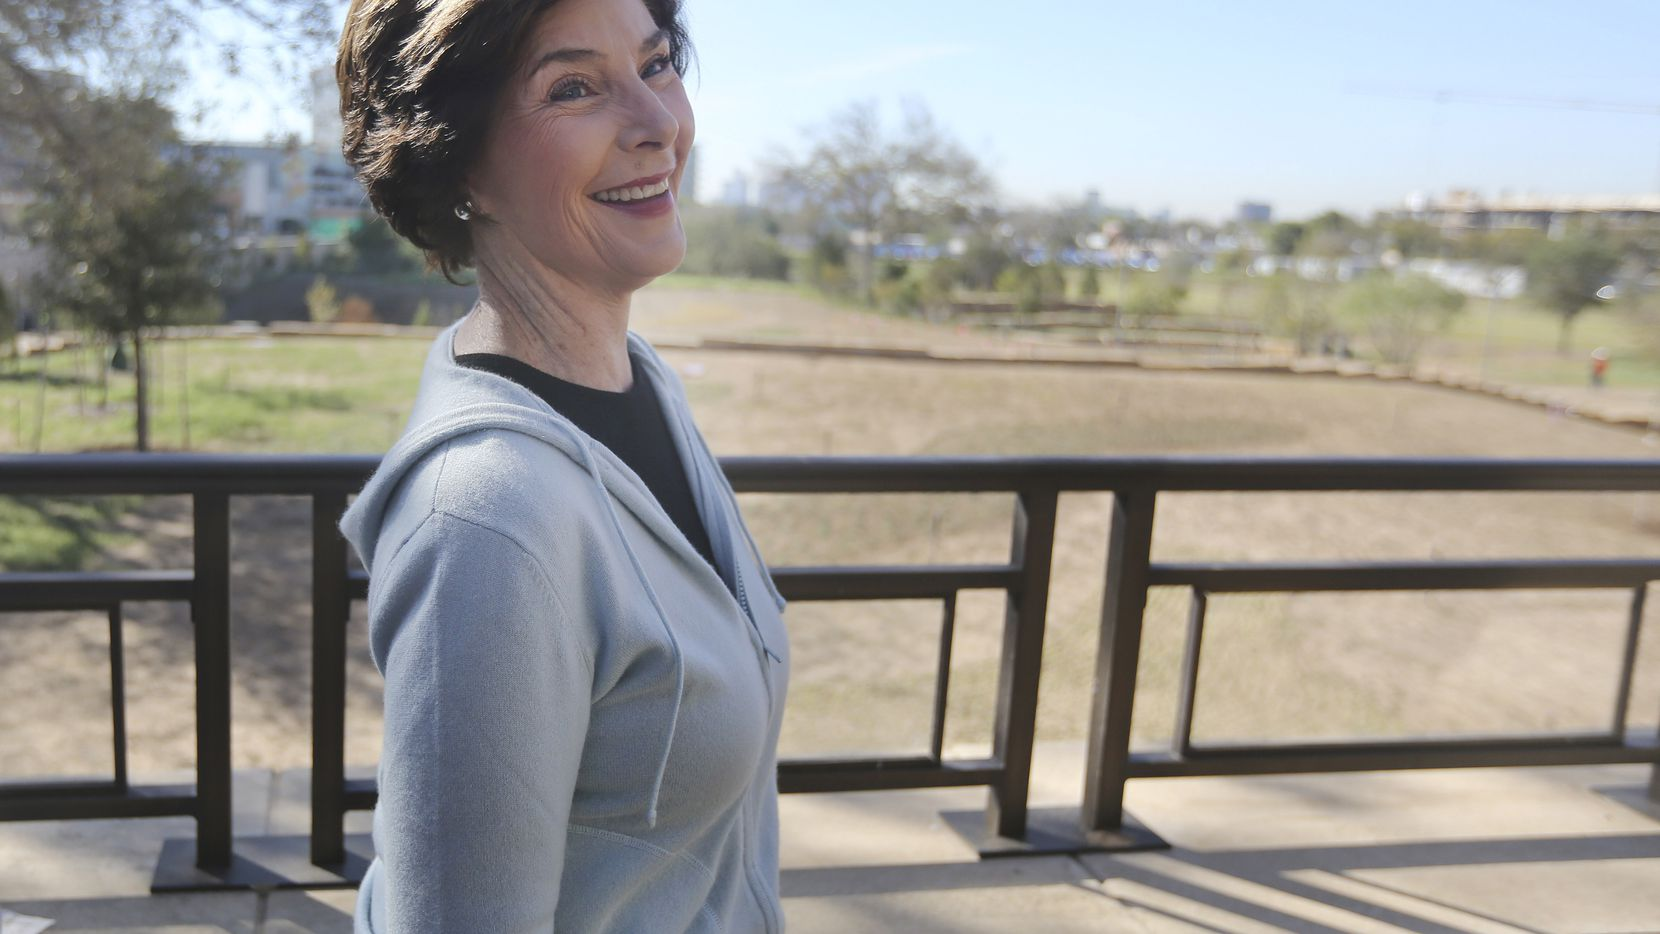 In this Oct. 29, 2012 photo, former first lady Laura Bush smiles during a tour of the George W. Bush Presidential Center in Dallas.  A 15-acre park at the upcoming George W. Bush Presidential Center will recreate a Texas prairie, complete with a wildflower meadow, a special blend of native grasses and even trees transplanted from the former president's ranch. The park's landscaping, which was completed this month, is a recreation of the kind of prairie landscape that would have existed in the area before it the city was built.